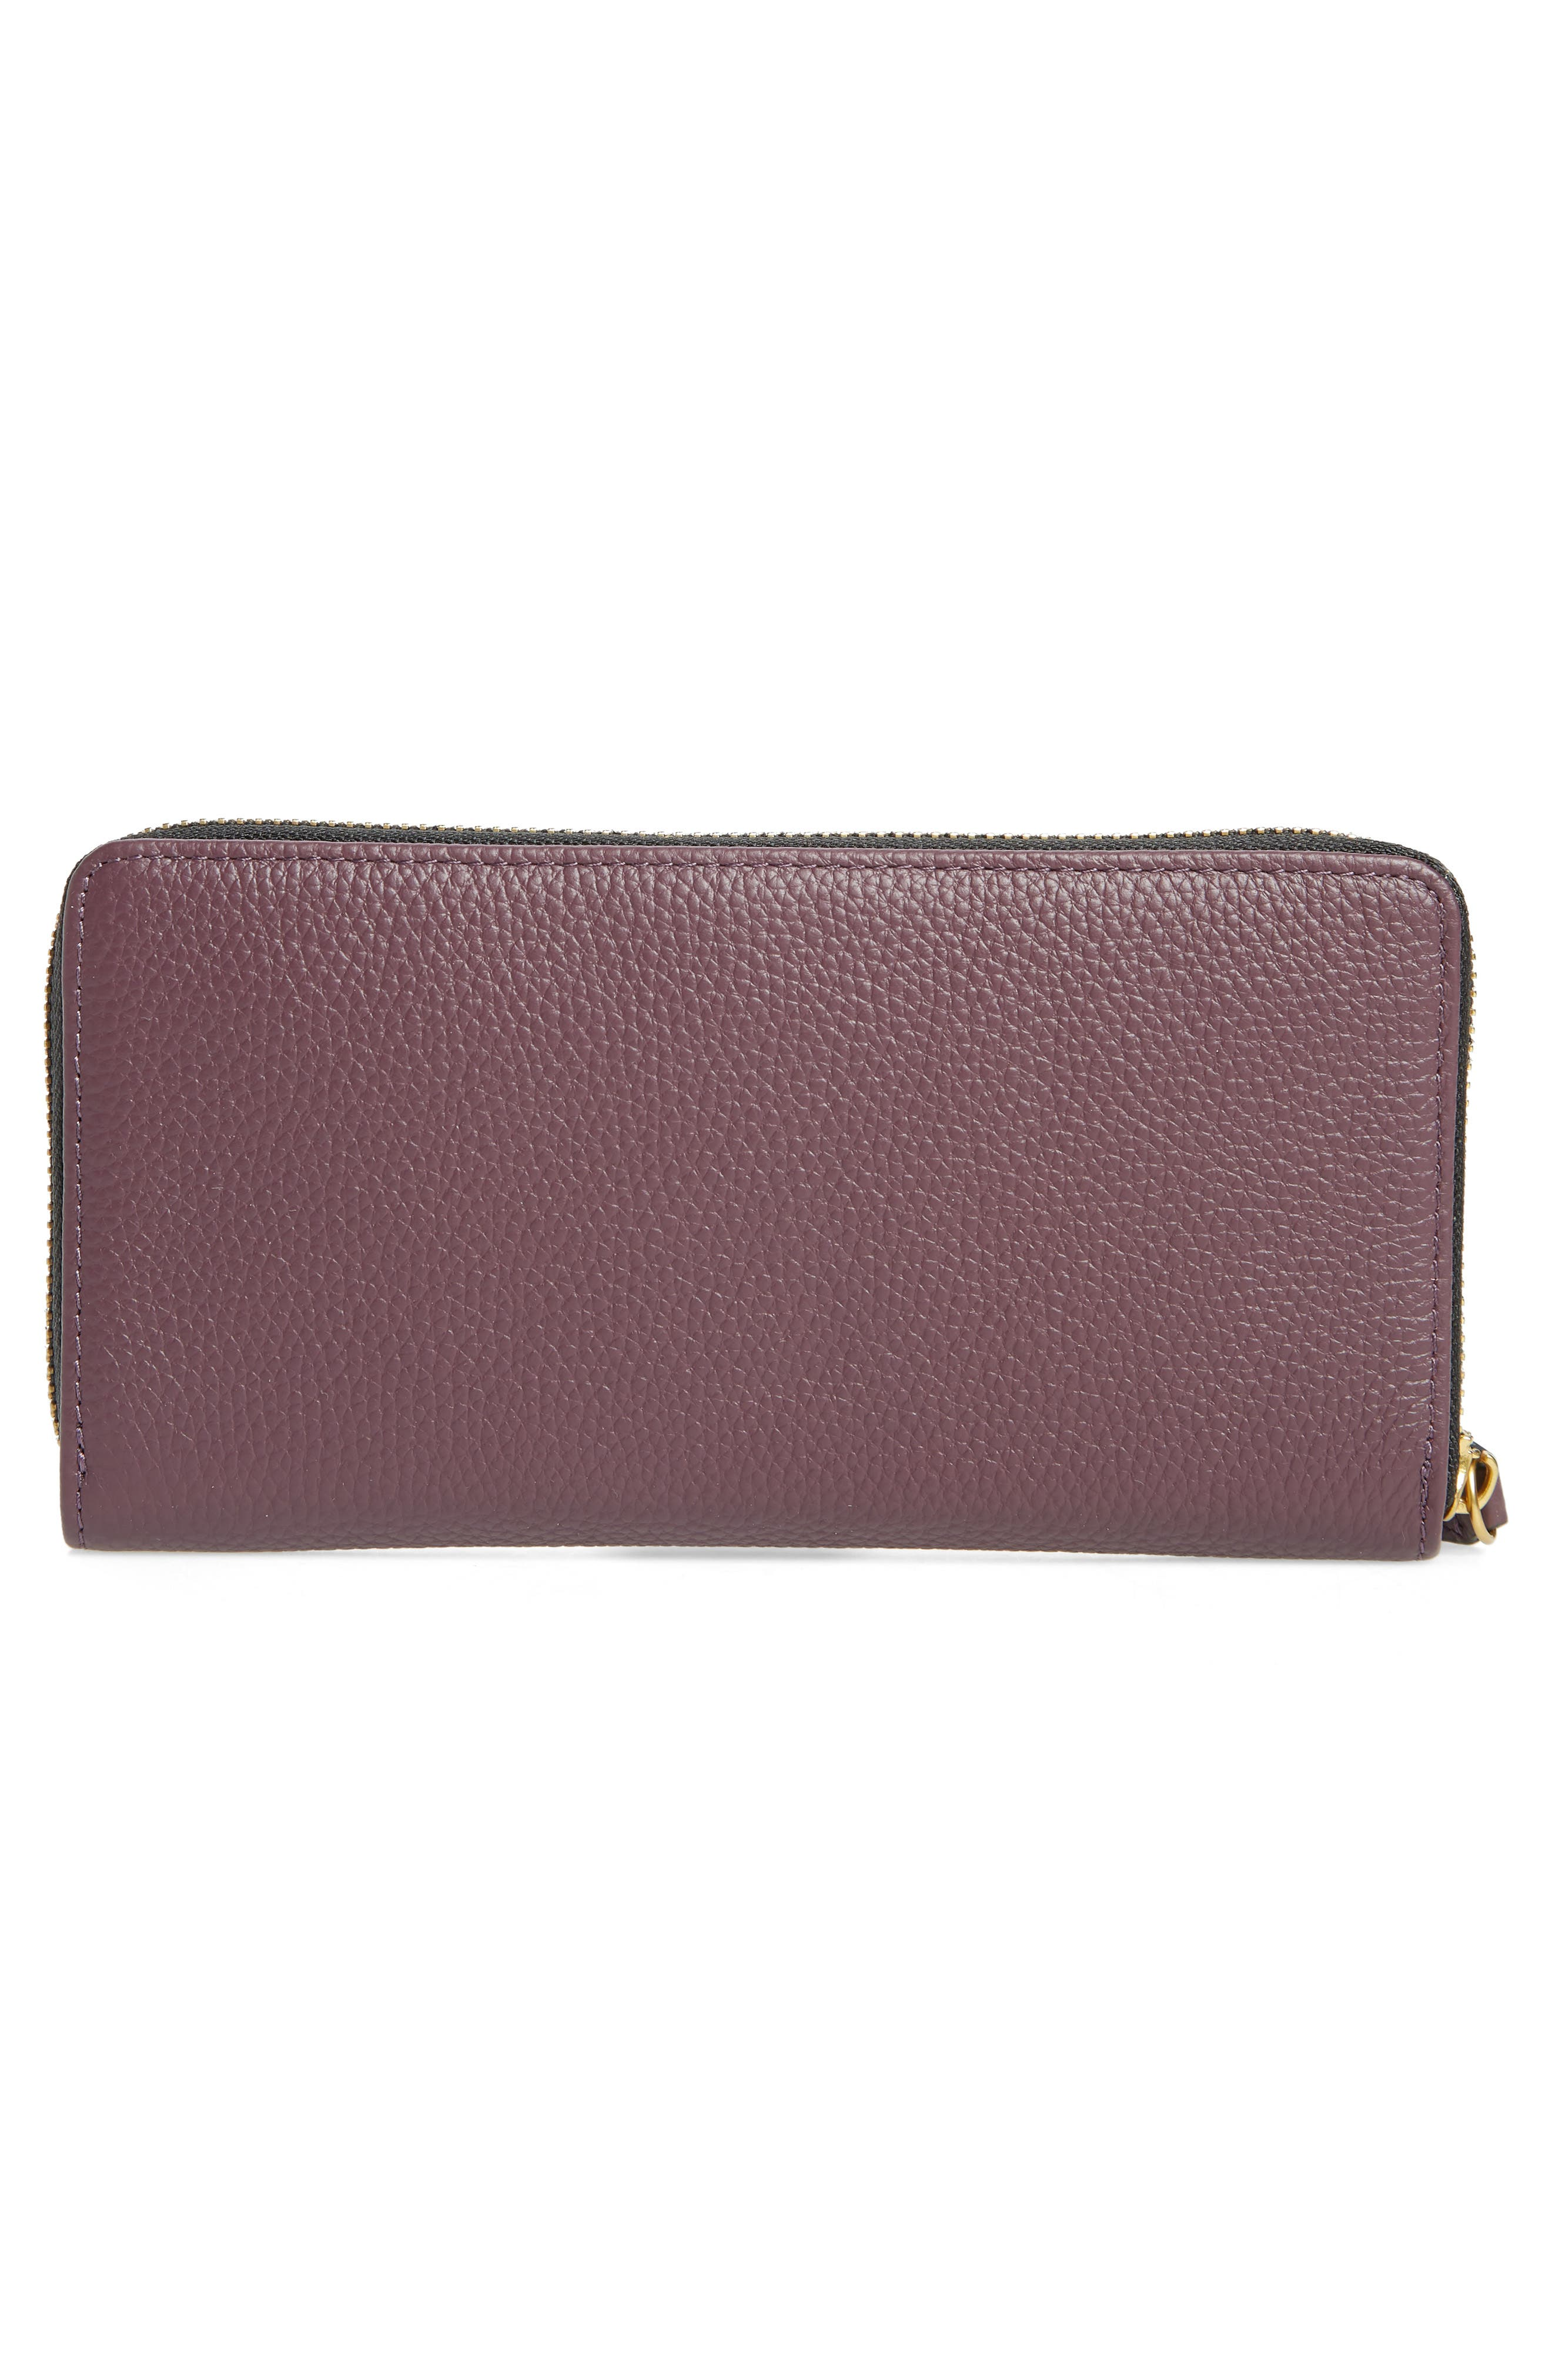 Zip Around Leather Wallet,                             Alternate thumbnail 12, color,